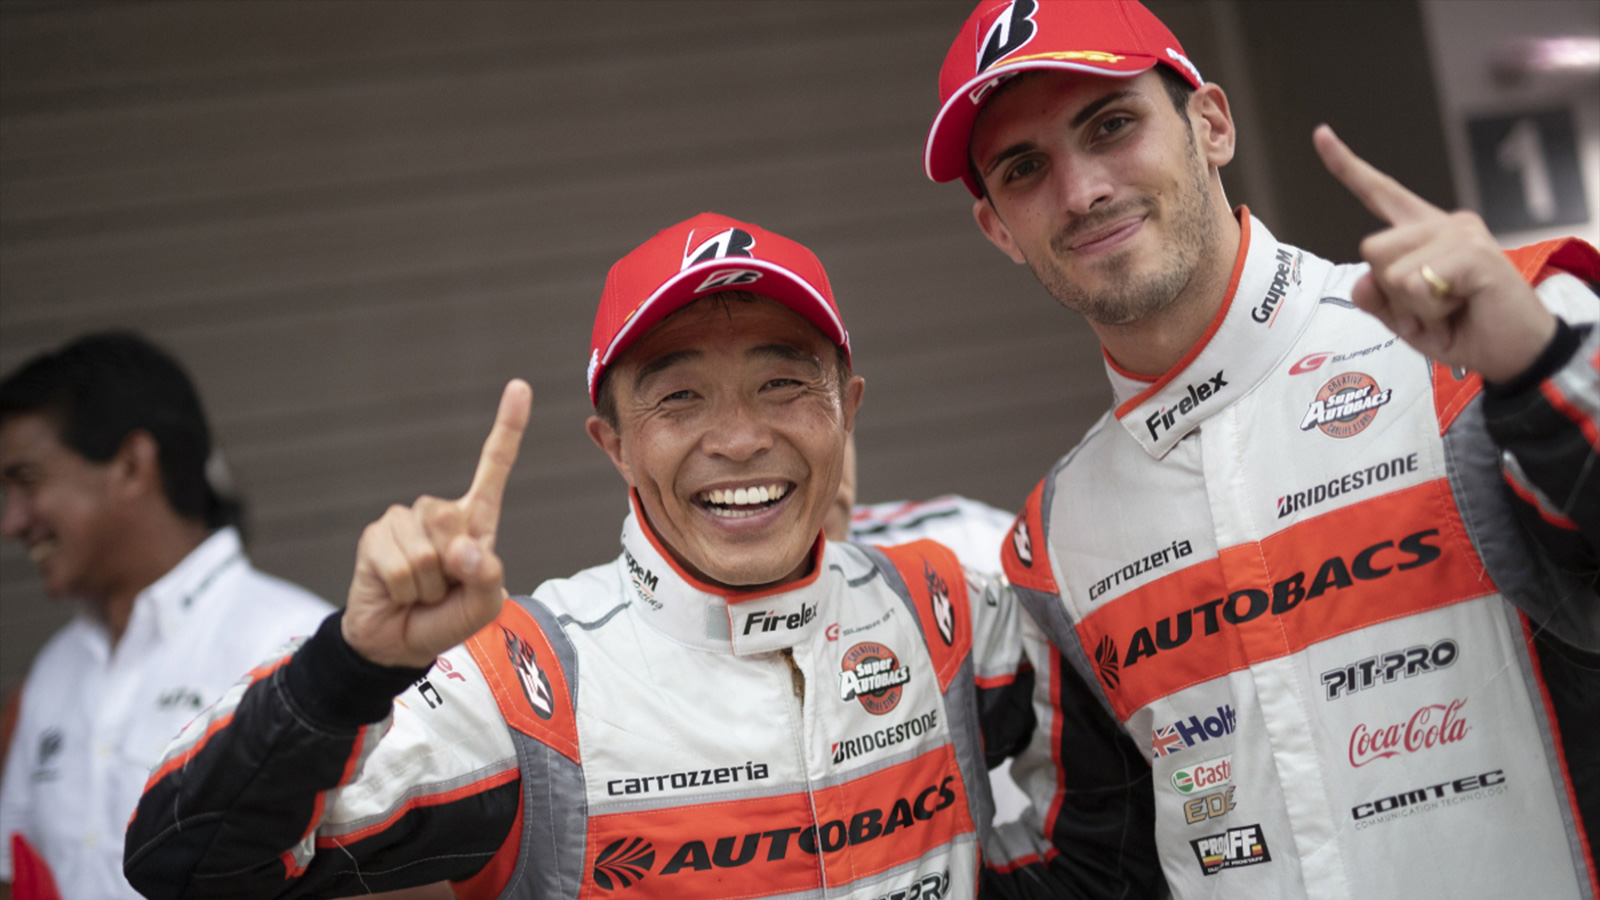 Autobacs Racing Team Aguri drivers take six point lead into Sugo.